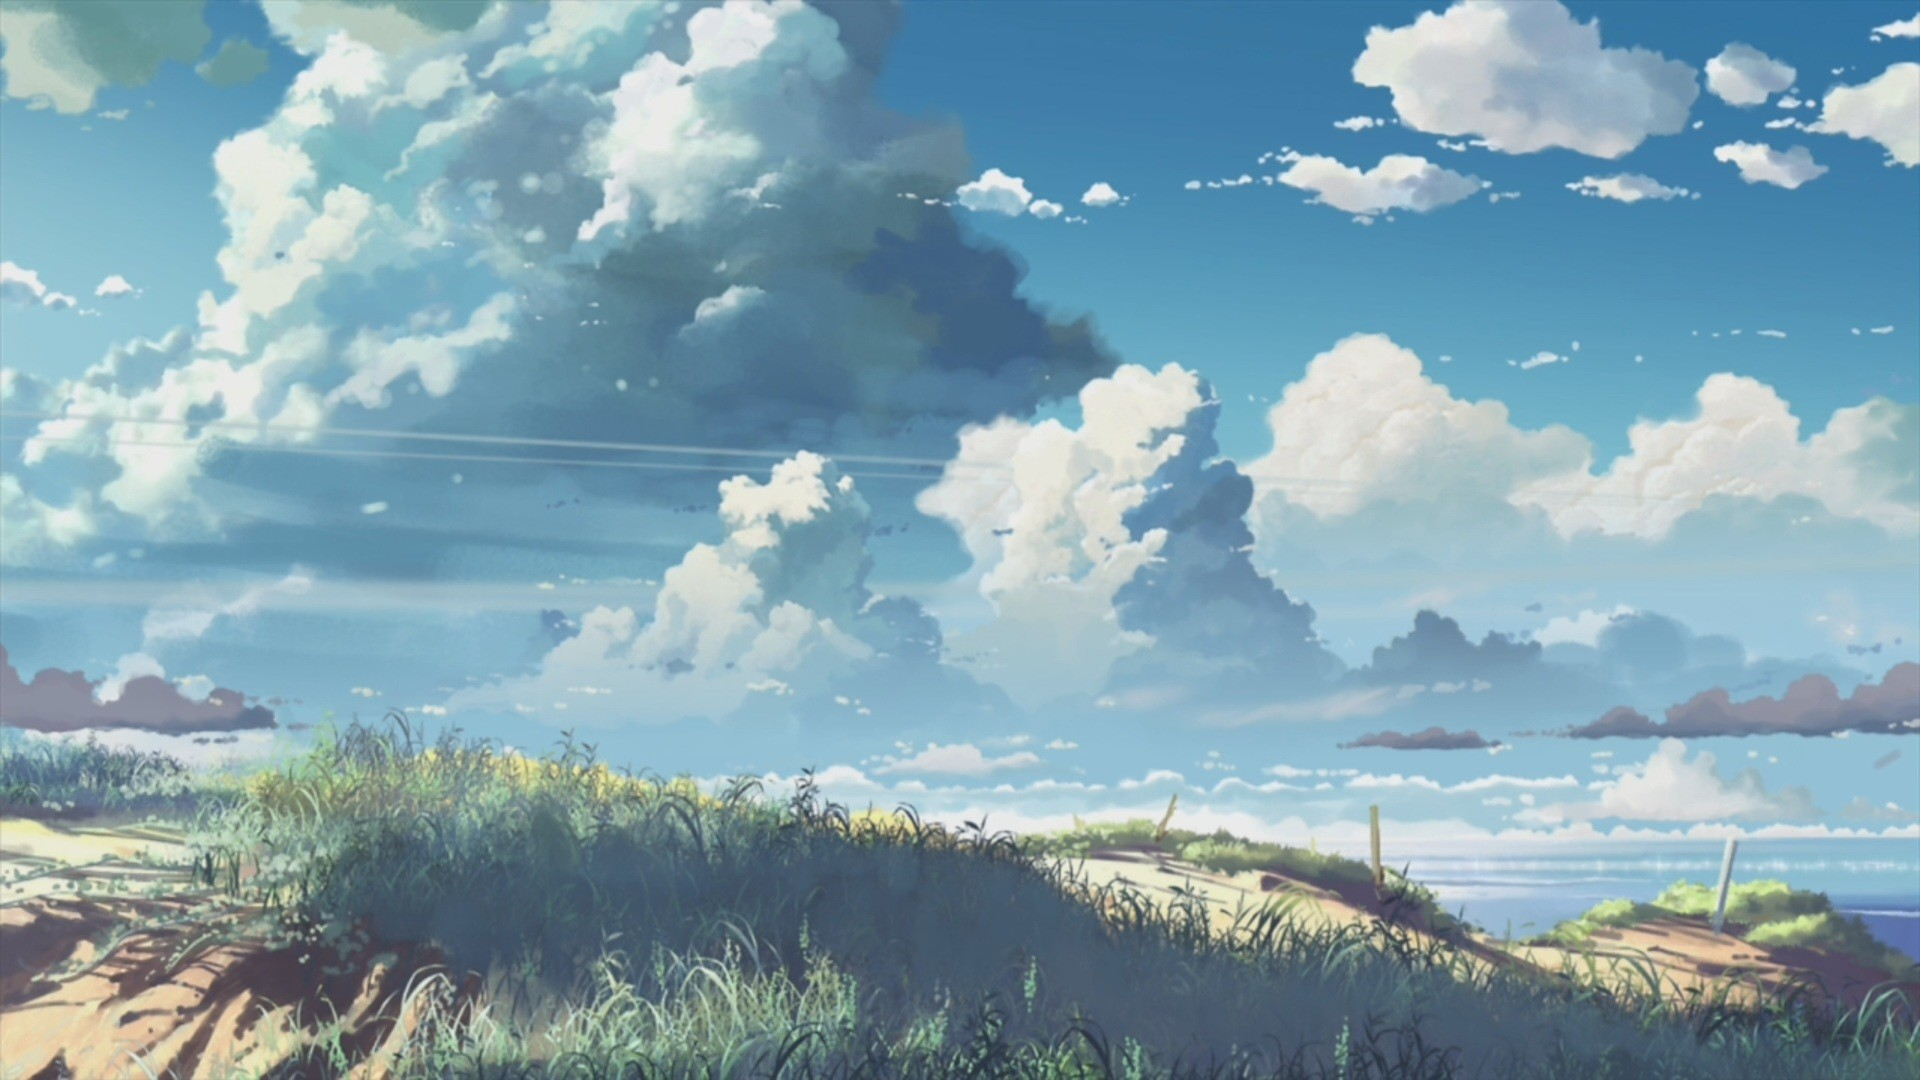 Res: 1920x1080, Anime Nature Wallpaper 39